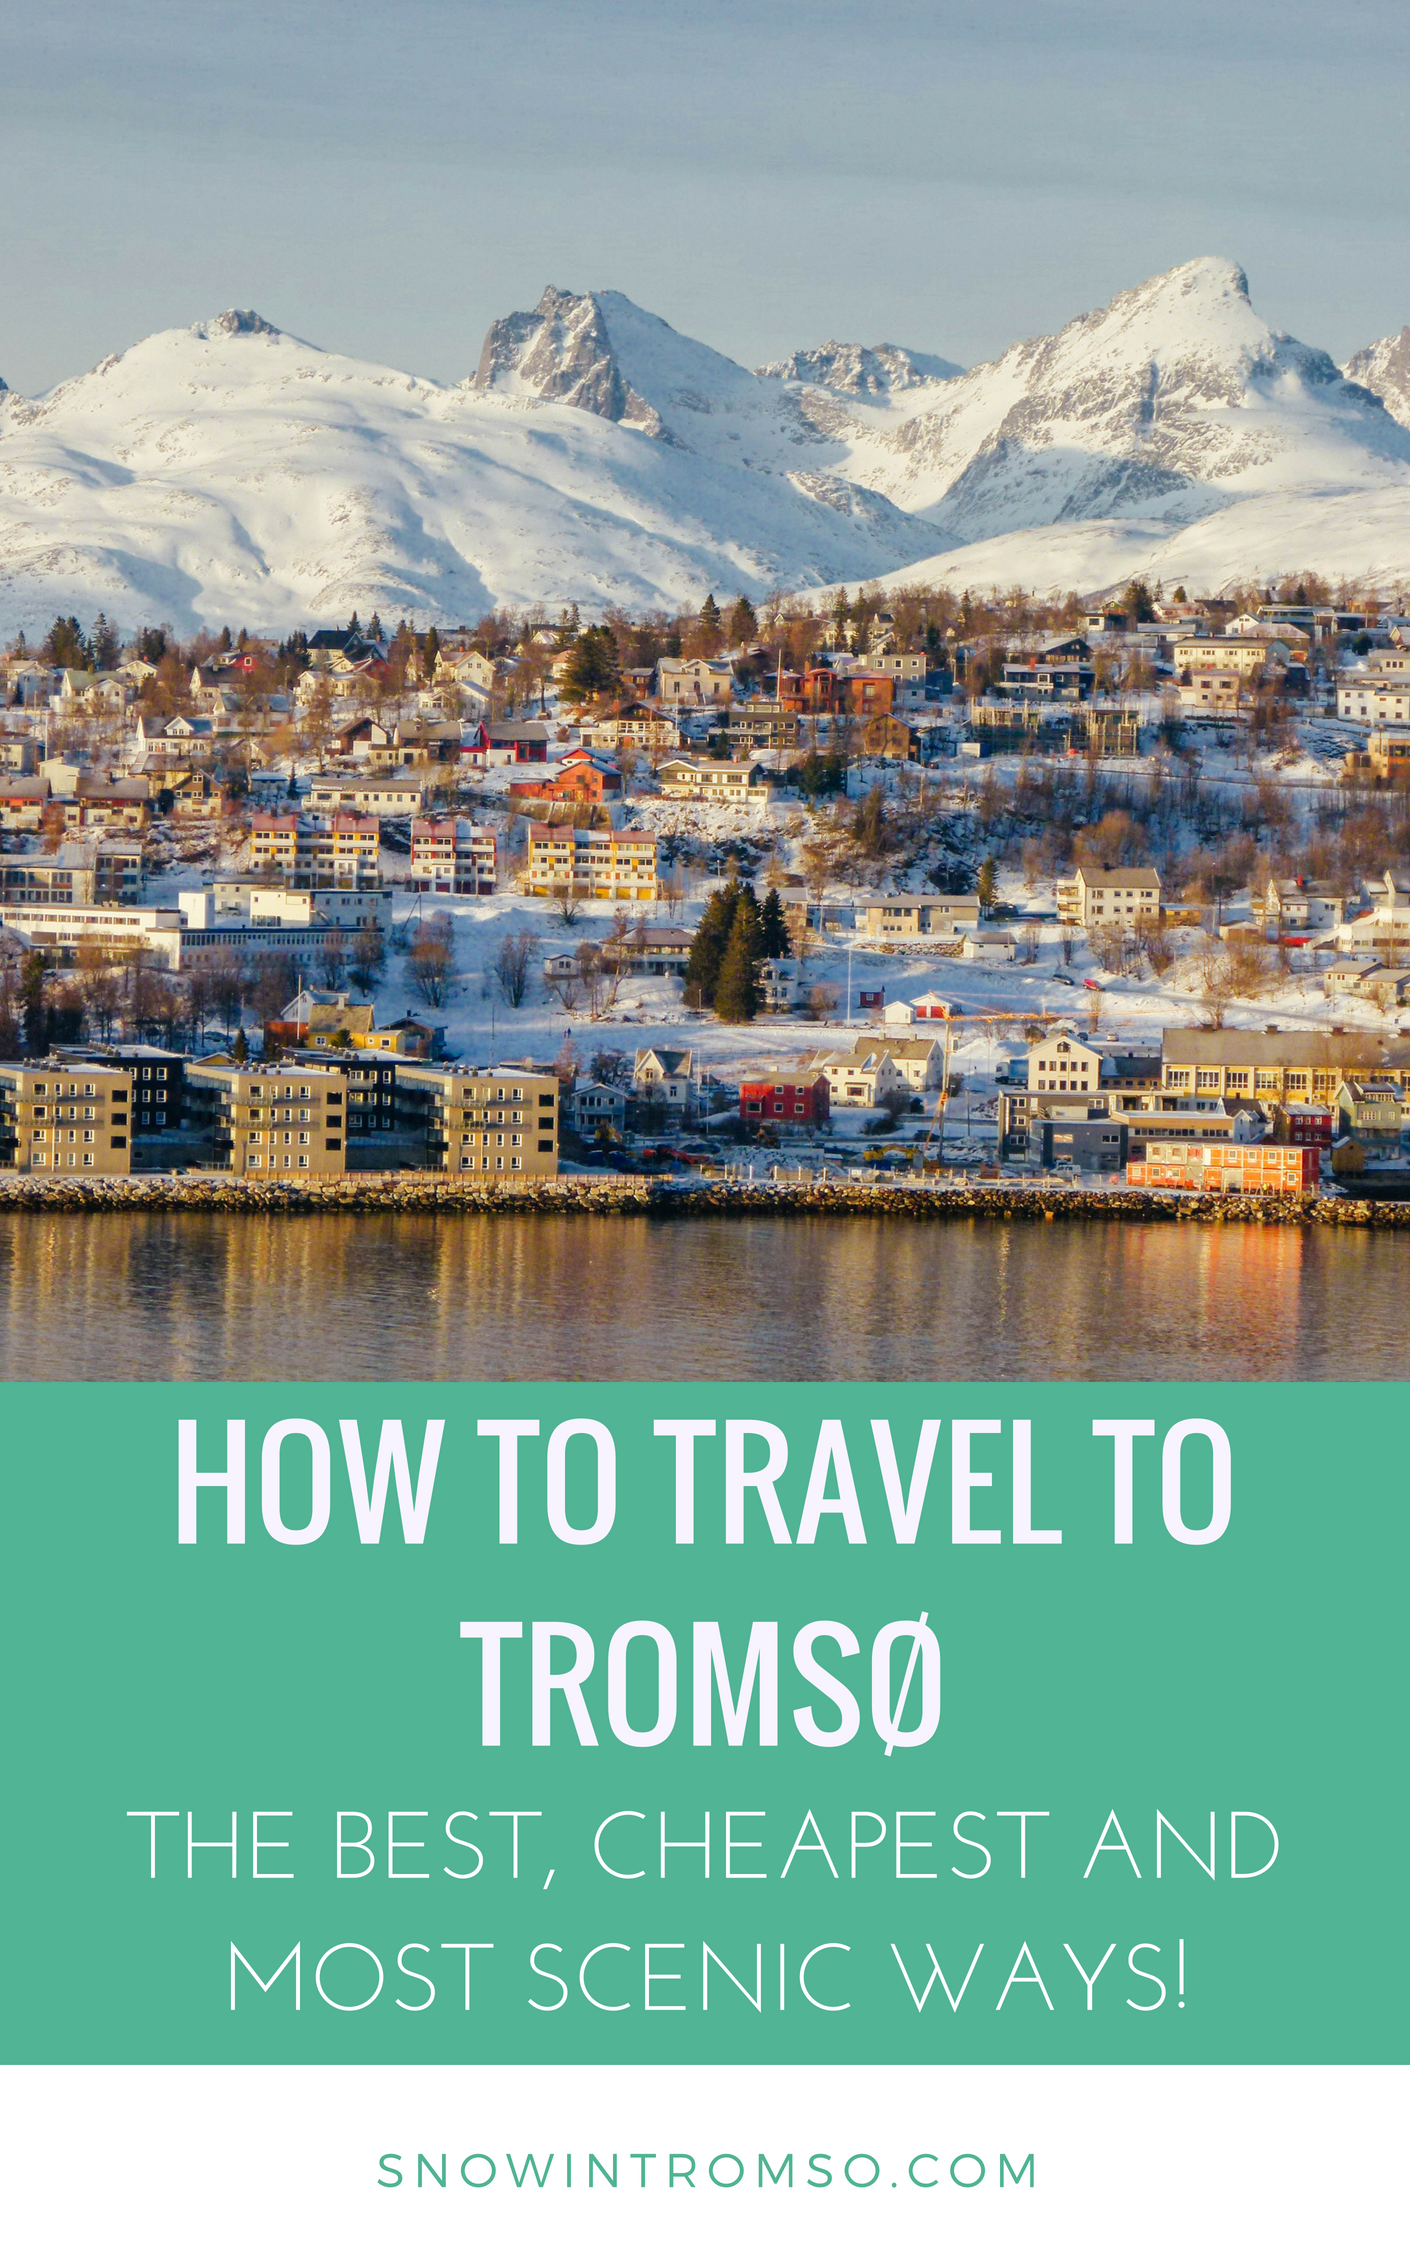 There are in total 5 ways to travel to Tromsø, which I'd all like to present to you in this article, along with their pros and cons!